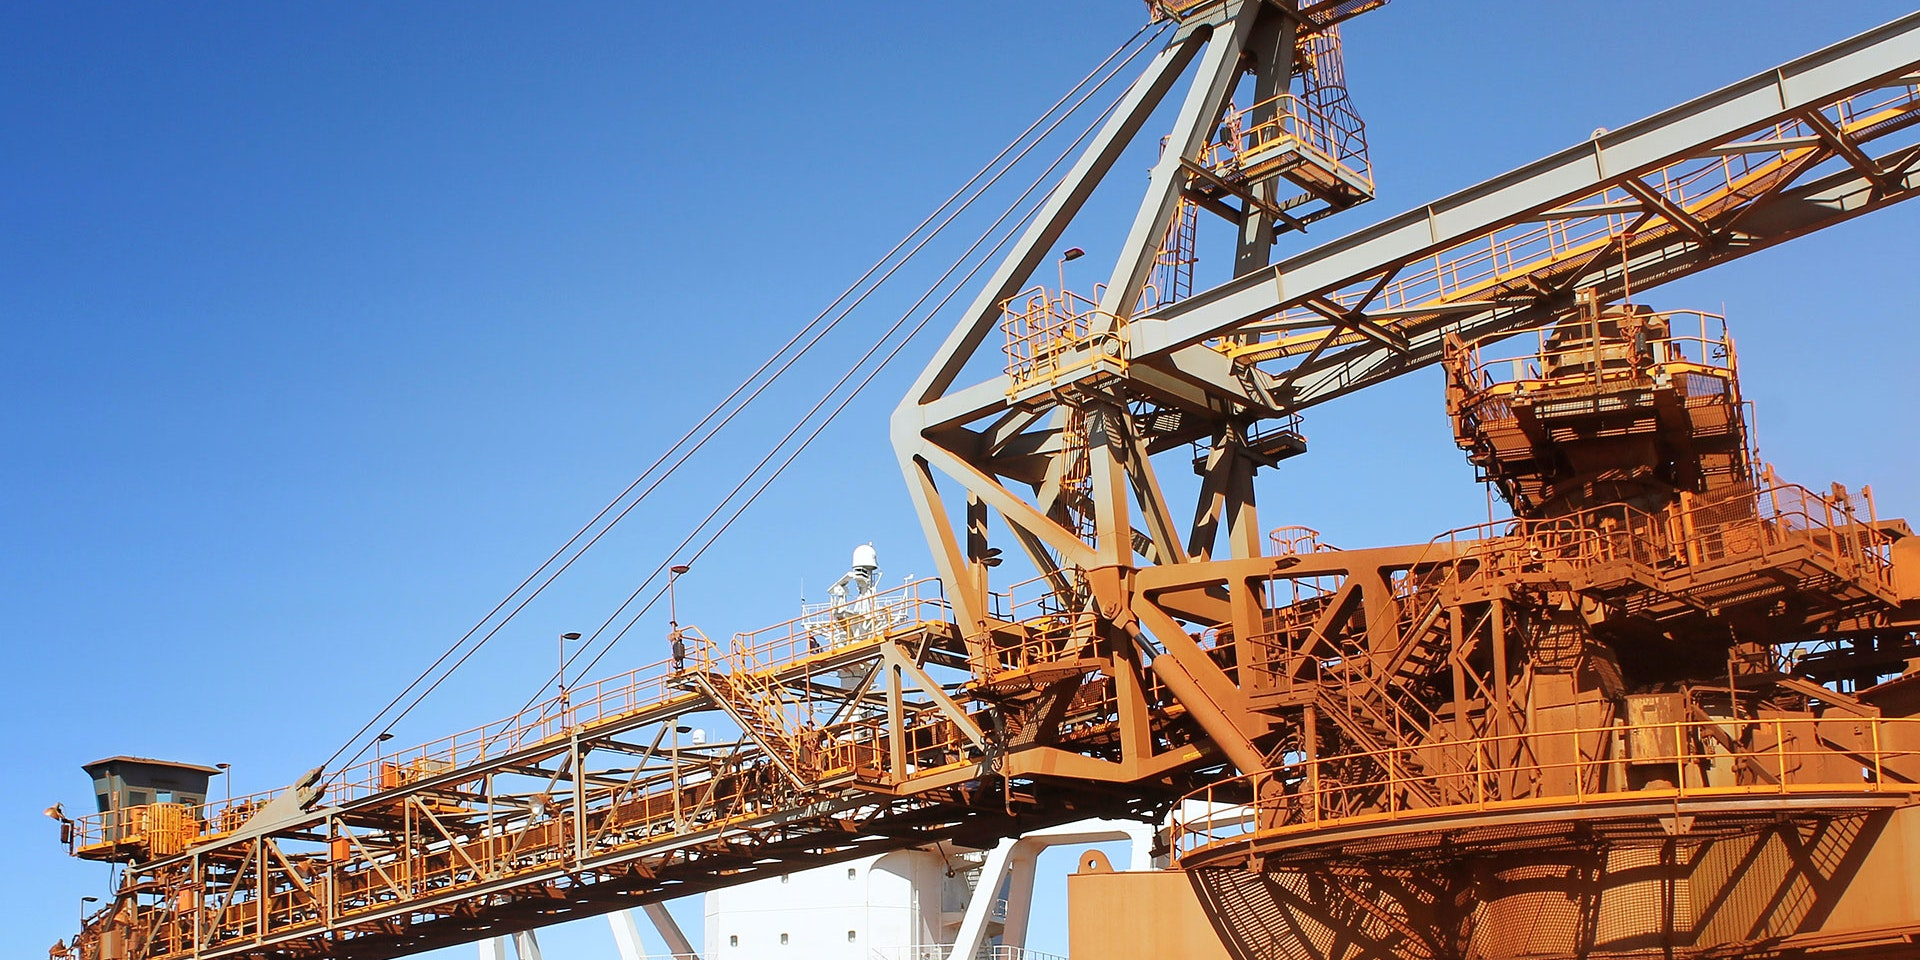 DLK2 LED Conveyor / Area Light in application, installed on a ship loader on an iron ore in bulkport